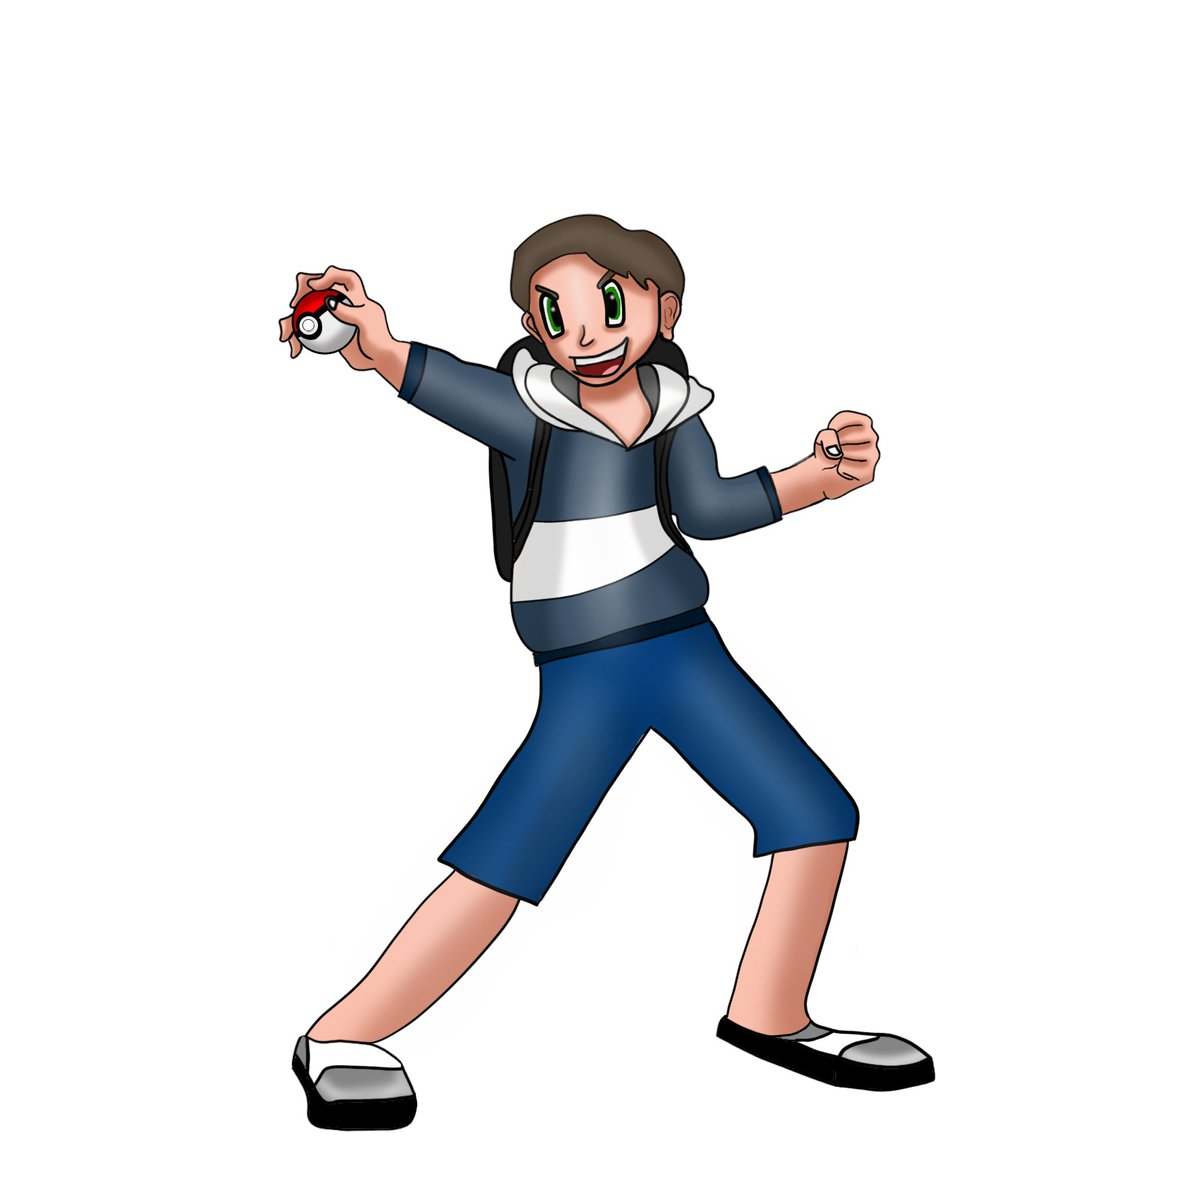 Starting up stream now with the new and improved trainer design made by @KaylaGraphics. Thank you so much for the time and effort you made creating this. Ready for VGC action: